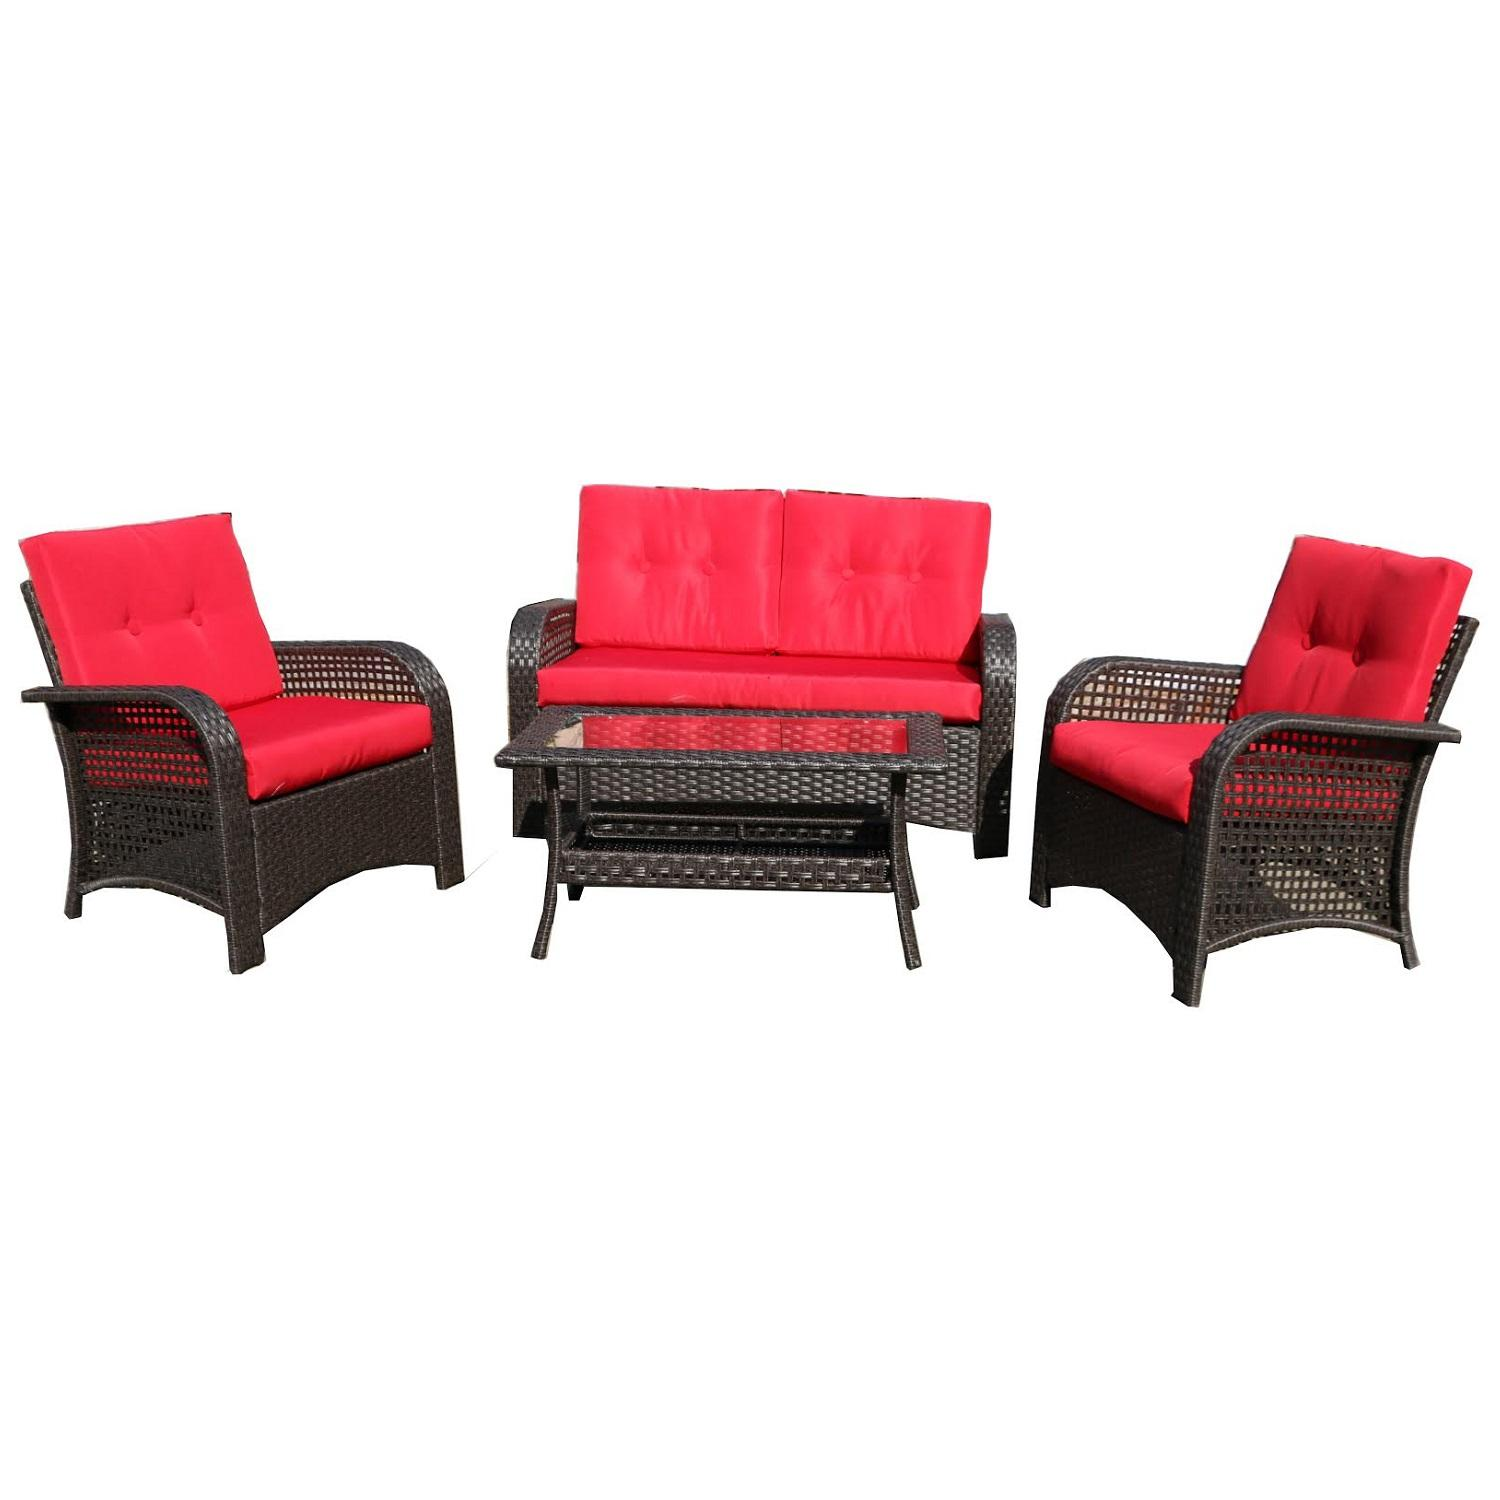 4 piece brown resin wicker outdoor patio furniture set red cushions